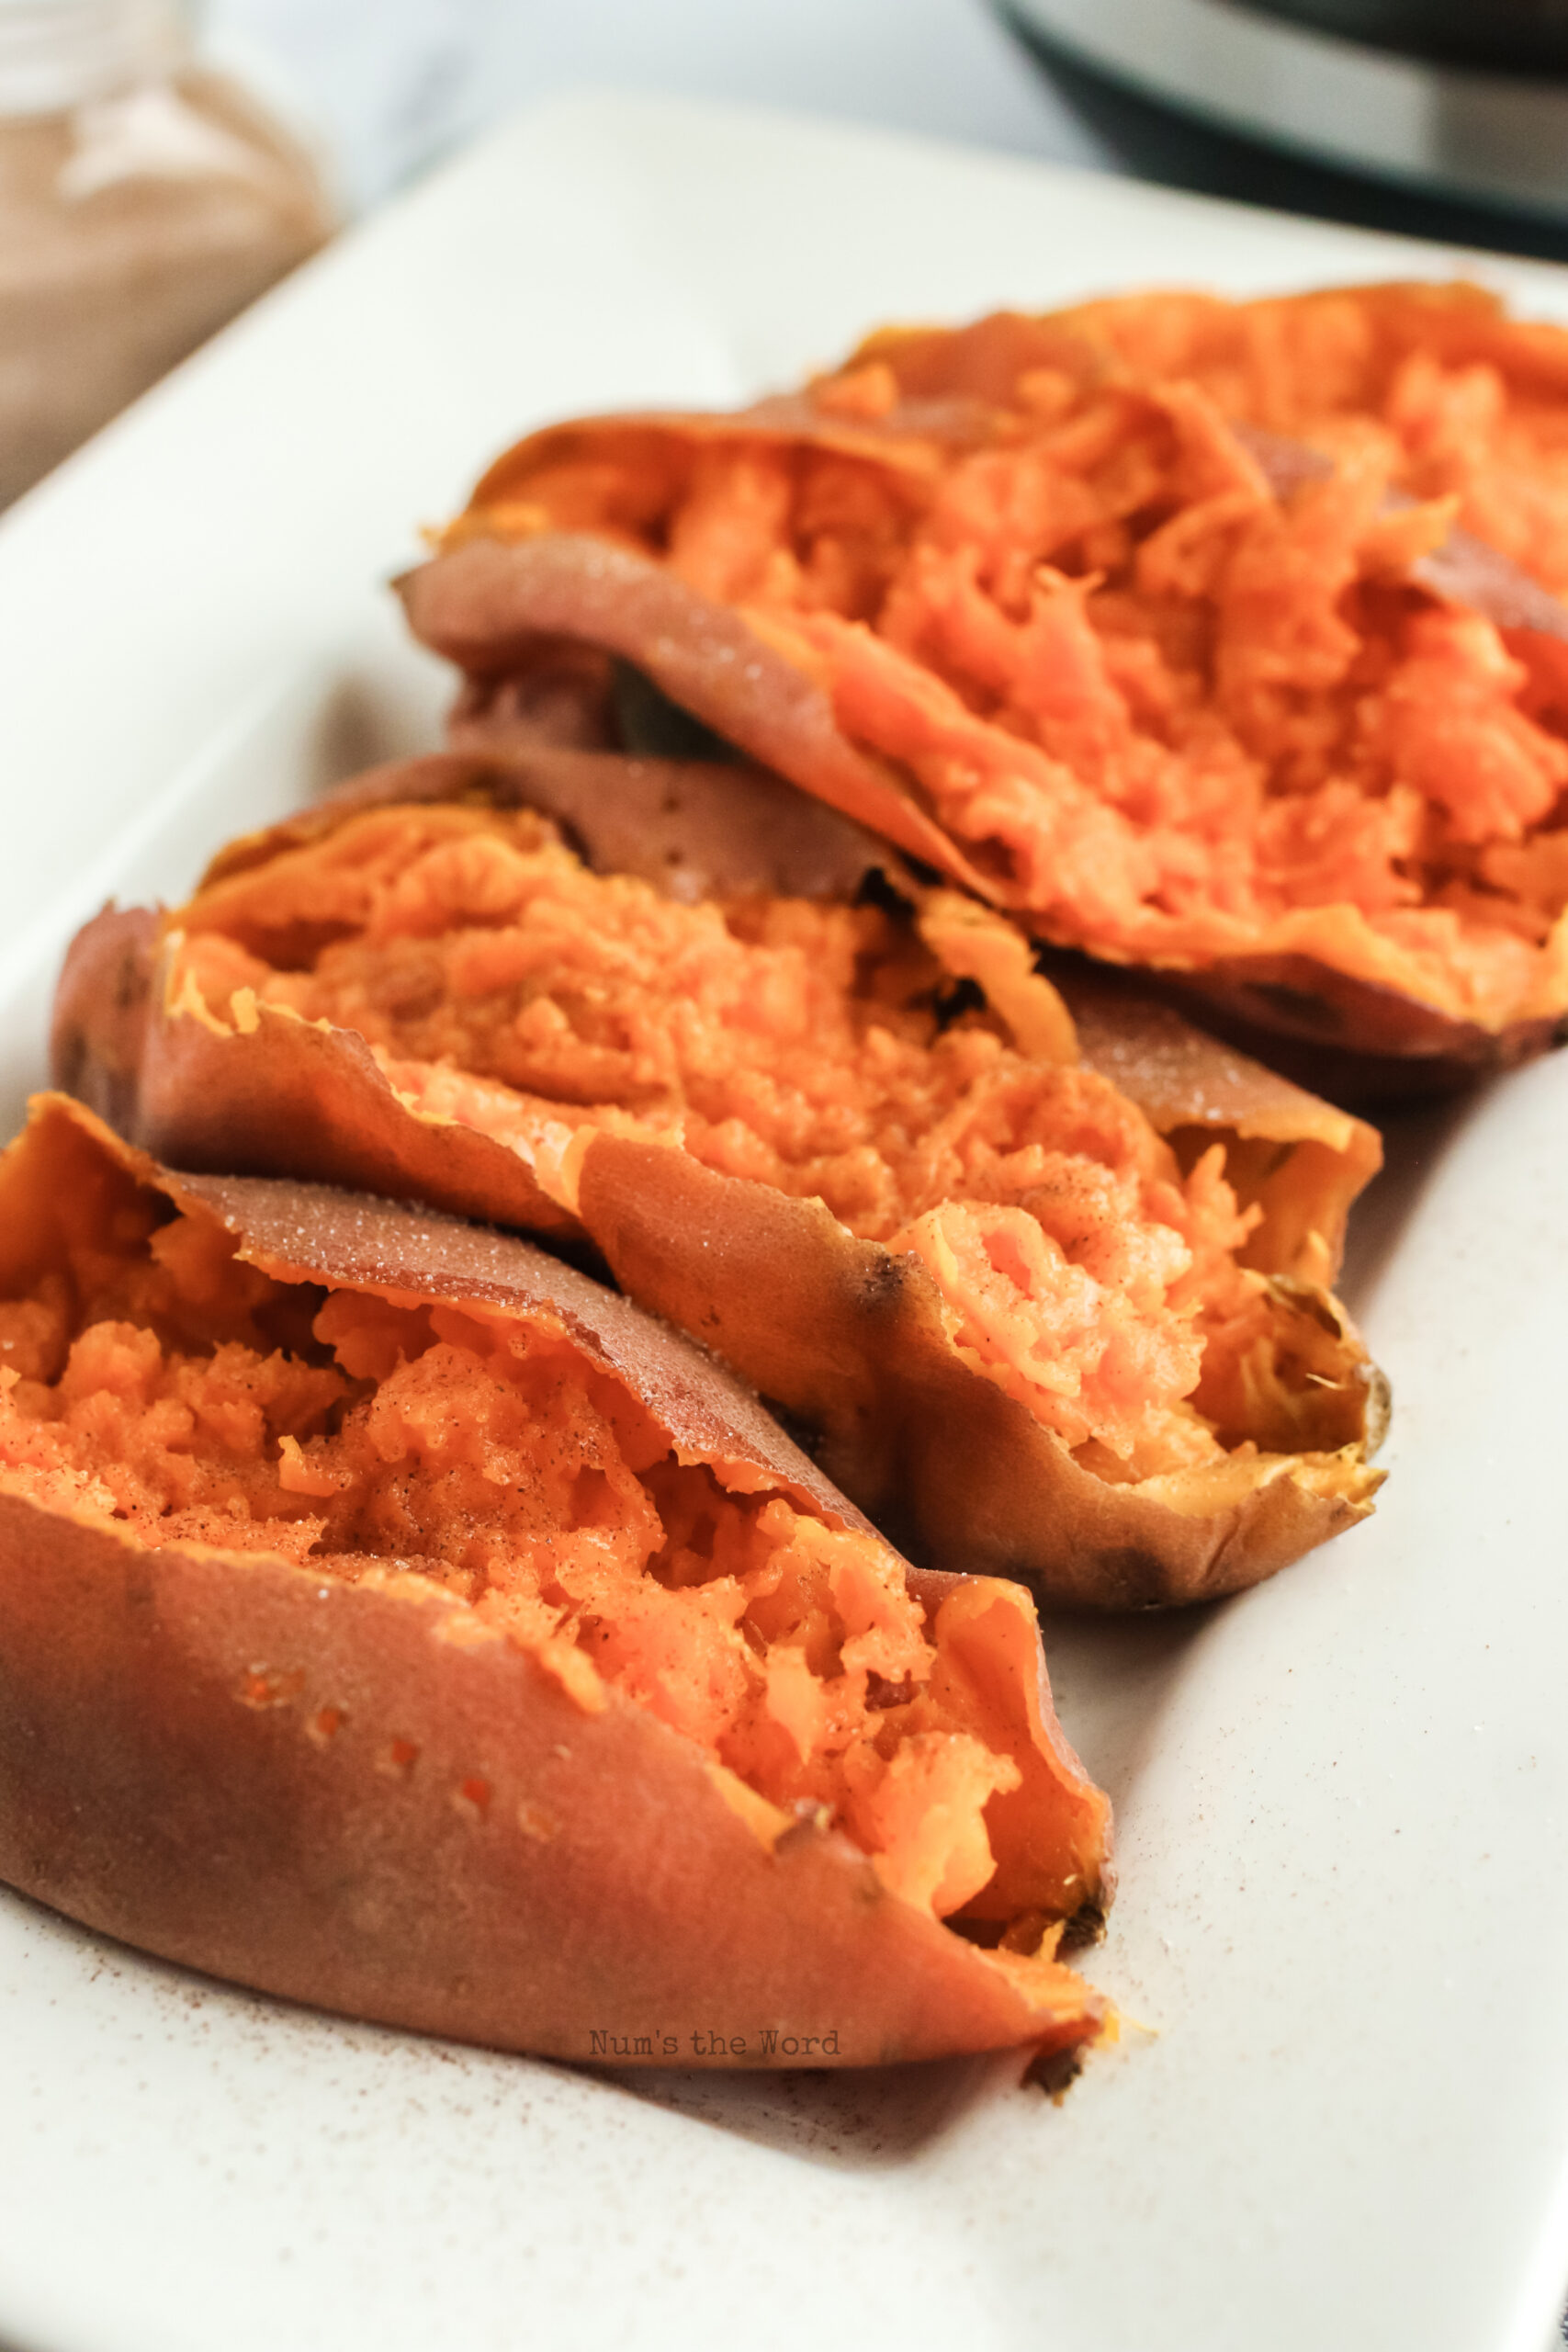 side view of 4 sweet potatoes on a platter, sliced open and ready to serve.